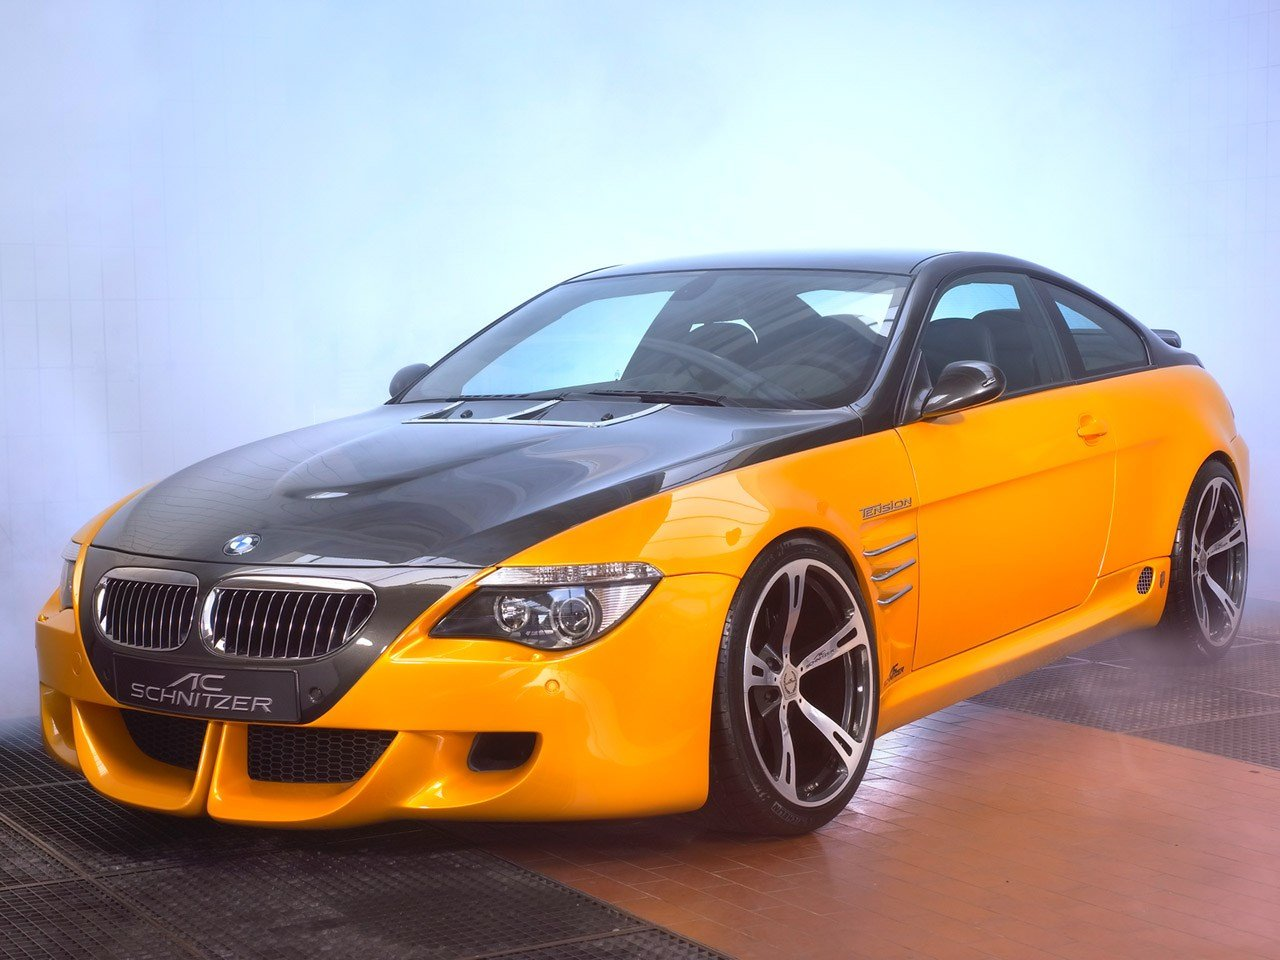 Latest Bmw M6 Ac Schnitzer Tension Concept Wallpapers By Cars Free Download